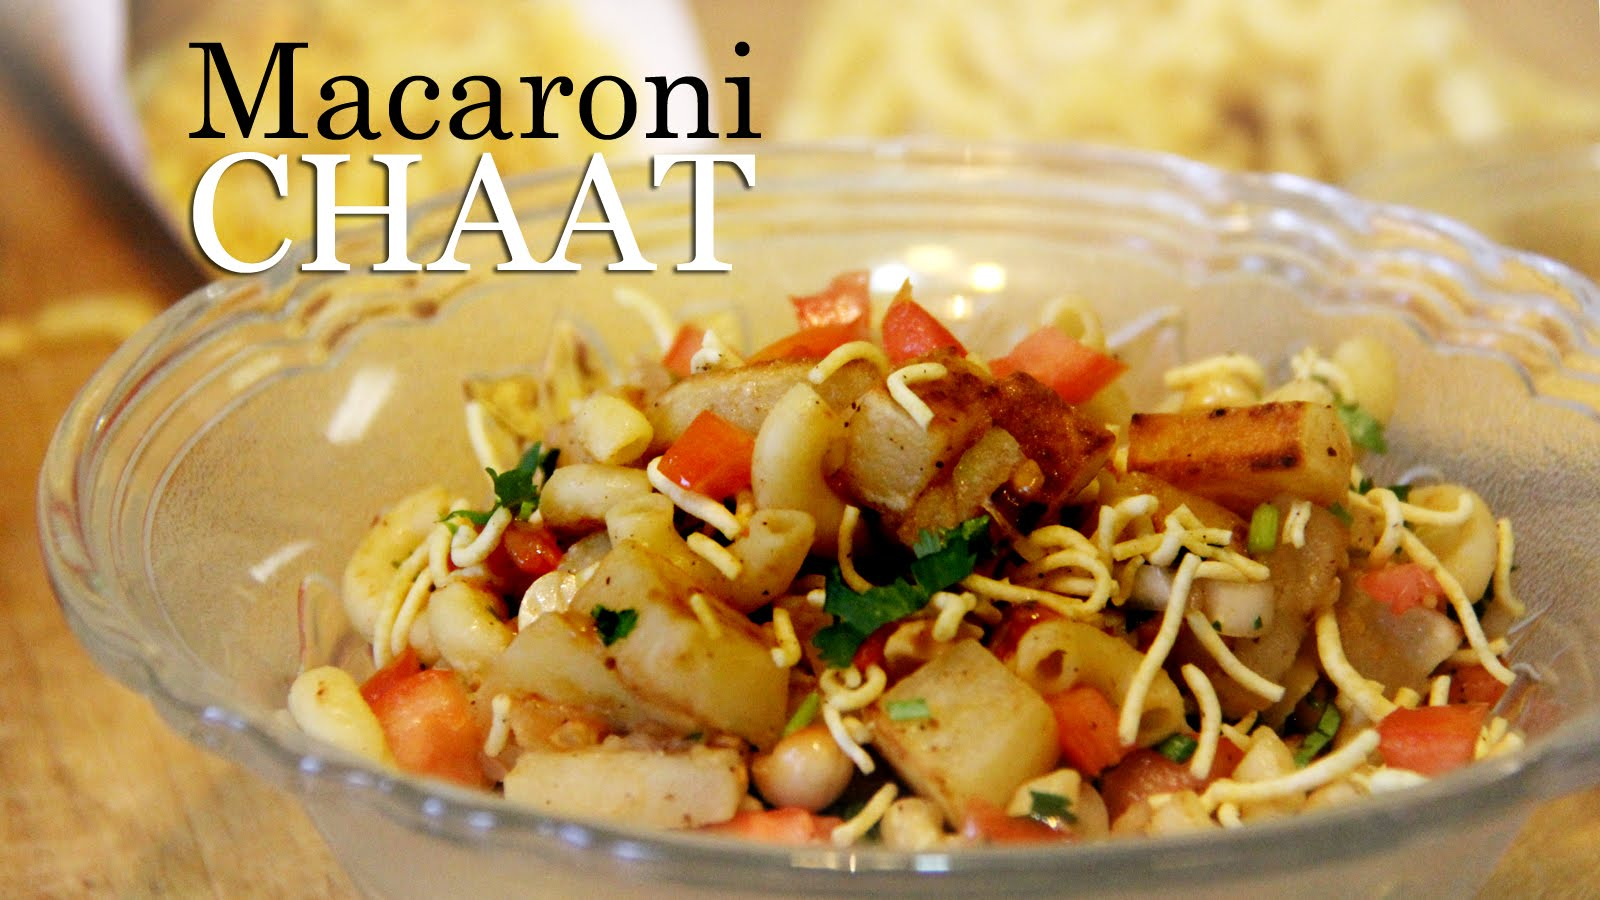 Macaroni chaat recipe indian style macaroni pasta recipe veg macaroni chaat recipe indian style macaroni pasta recipe veg appetizer recipes indian by shilpi forumfinder Images